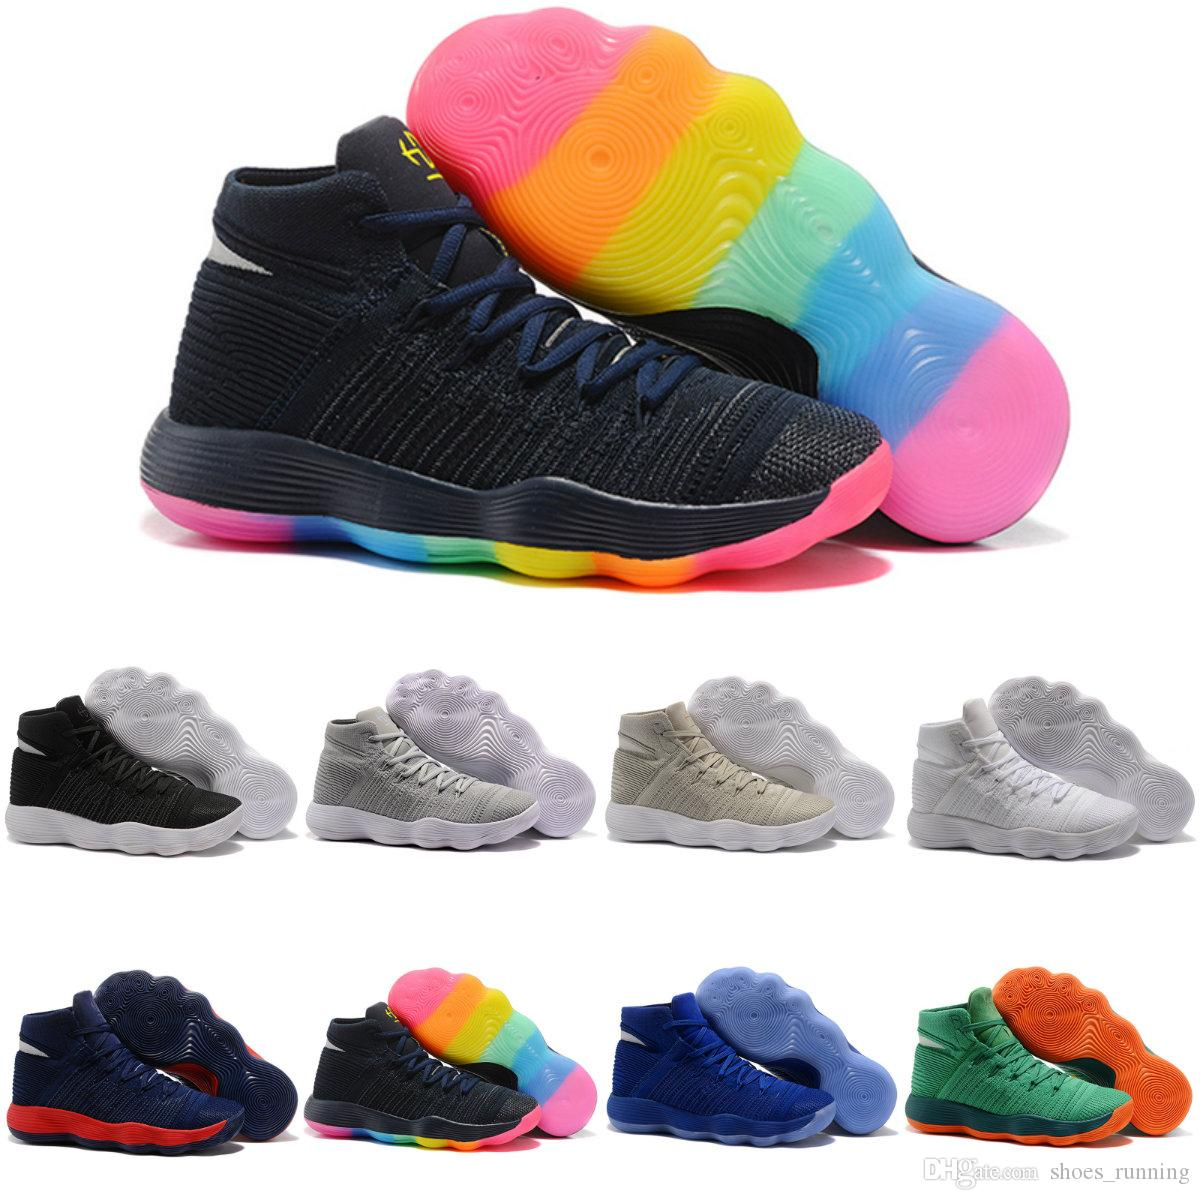 ee4590cbc4d7 Hyperdunk 2017 Knit Style Mens Basketball Shoes Trianing Sports Sneakers  Hyperrev Outdoor Trainer Shoes Sneaker Green Blue 40 46 With Box Shoes For  Sale ...